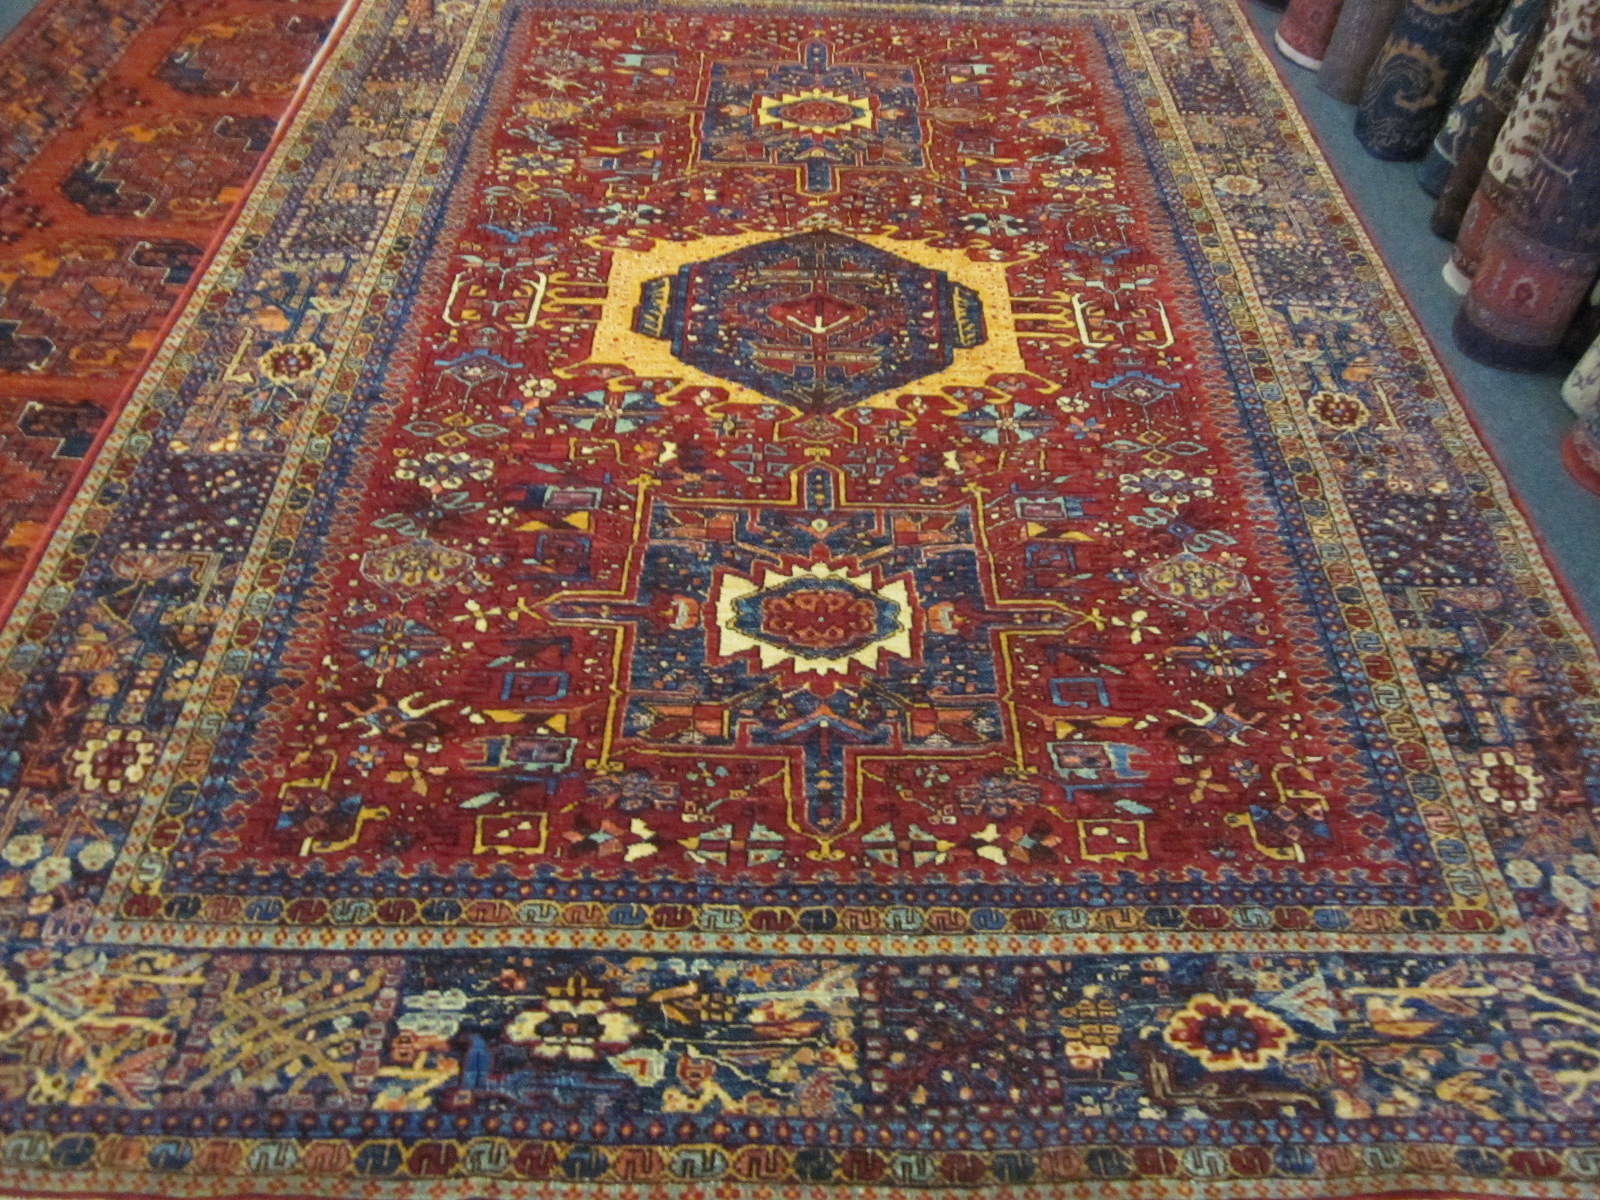 6x9-new-Afghan-rug-in-an-antique-tribal-design-for-sale.JPG